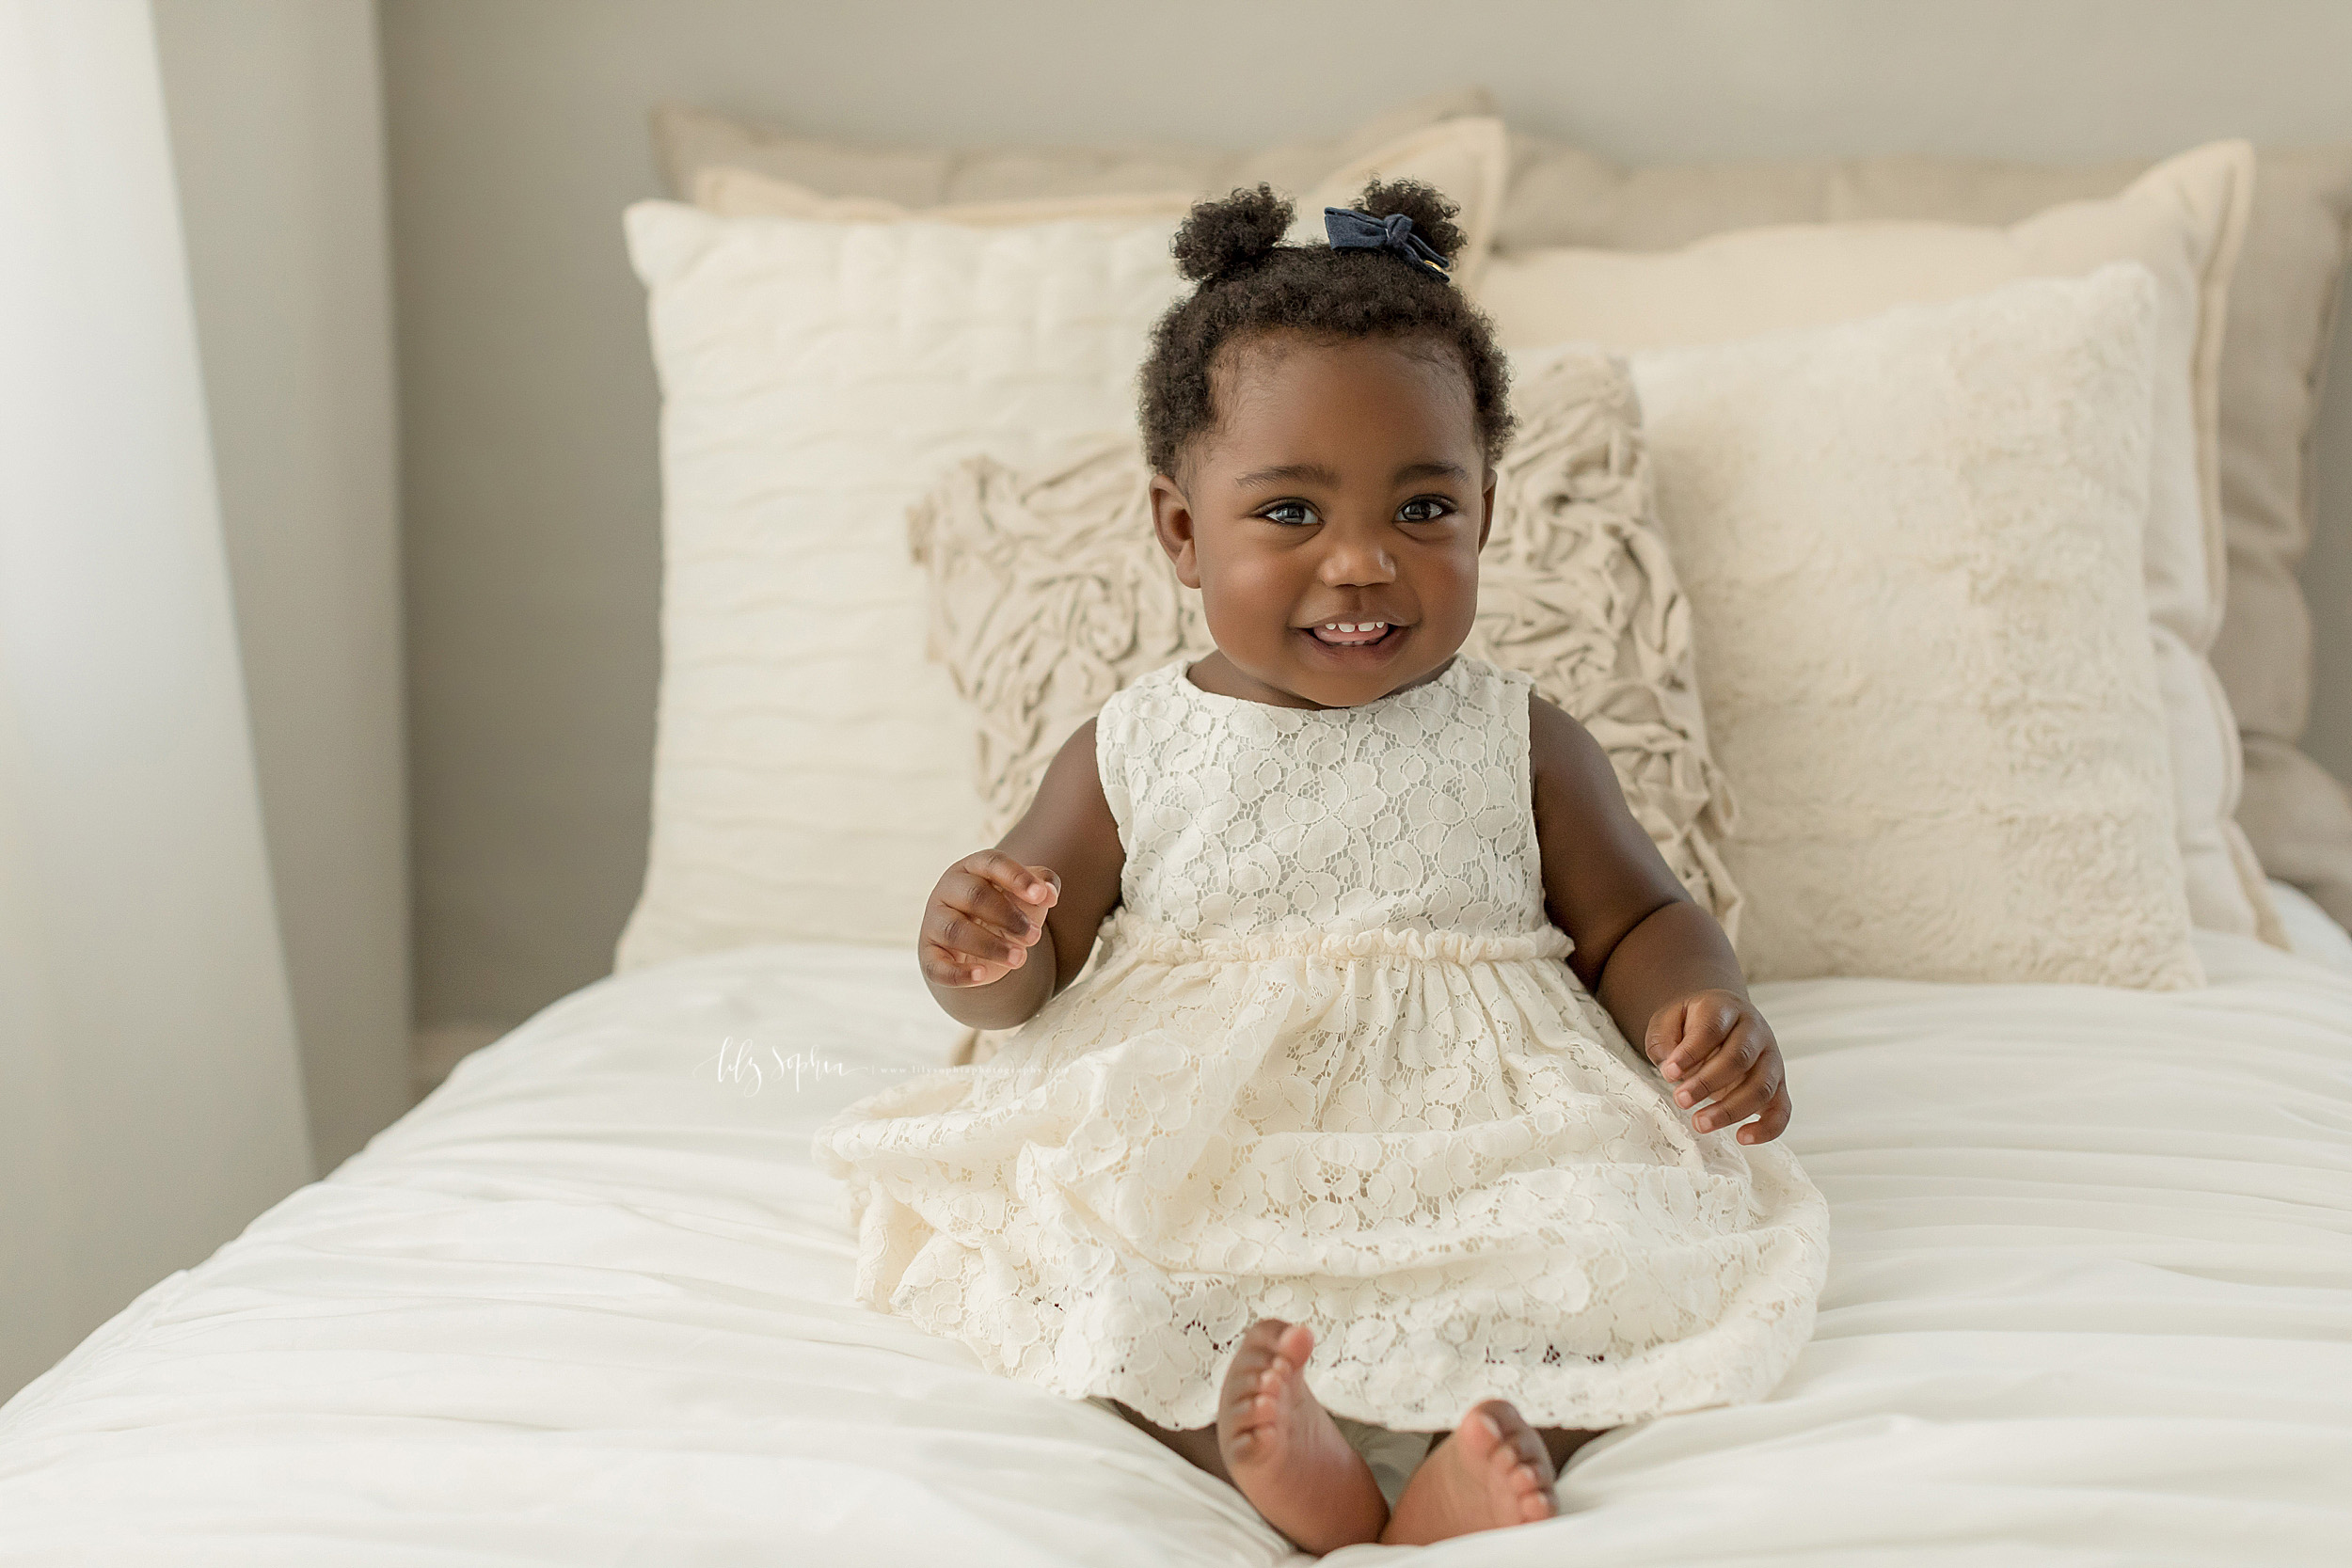 Image of a smiling African-American one year old girl for her first birthday taken by Lily Sophia Photography in a natural light studio in Atlanta.  The little girl is wearing an off-white sleeveless lace dress.  She has two ponytails on top of her head as she sits on a bed barefoot.